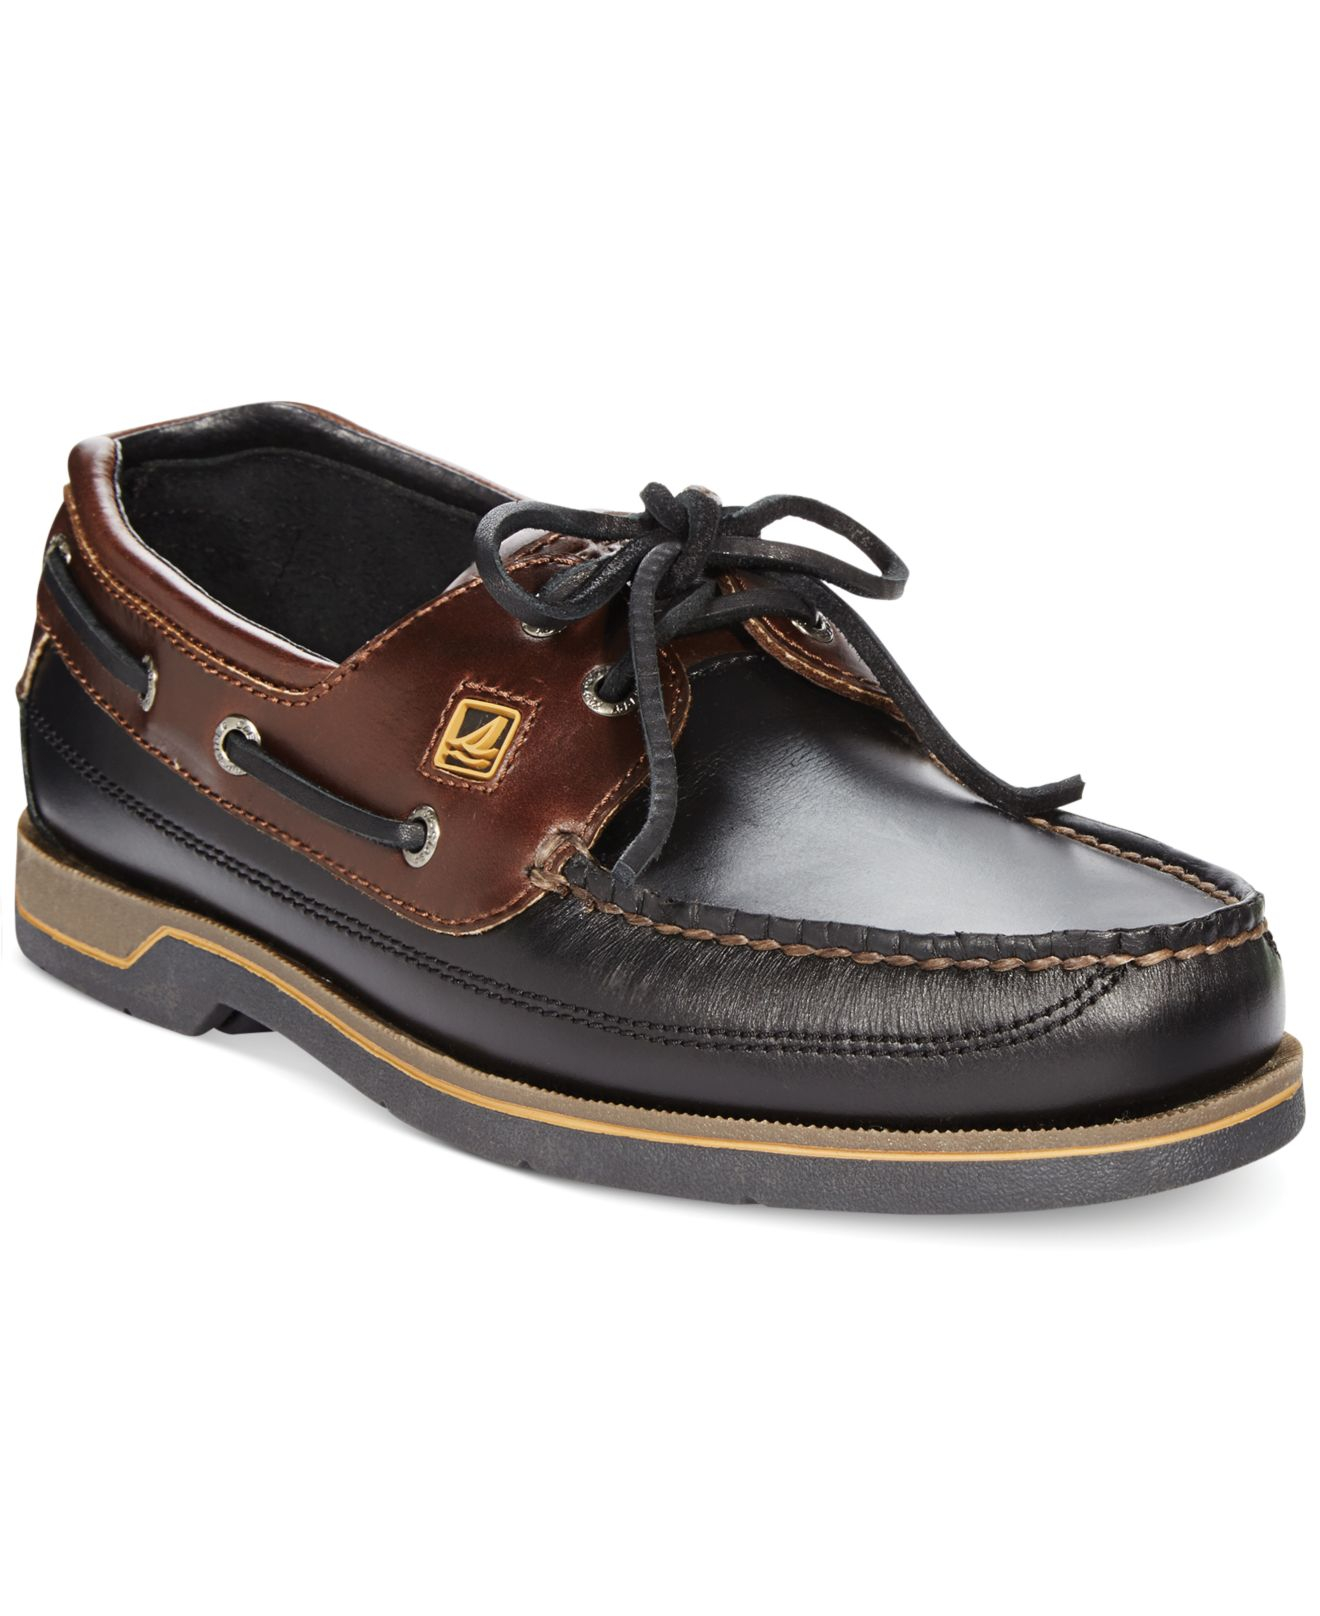 Since , Authentic Original boat shoes have been a favorite of those who spent time in, on or around the ocean. Each season, new colors and fabrics are introduced that, along with core classic styles, encompass Sperry's passion for the sea and commitment to fine chicksonline.gqs: